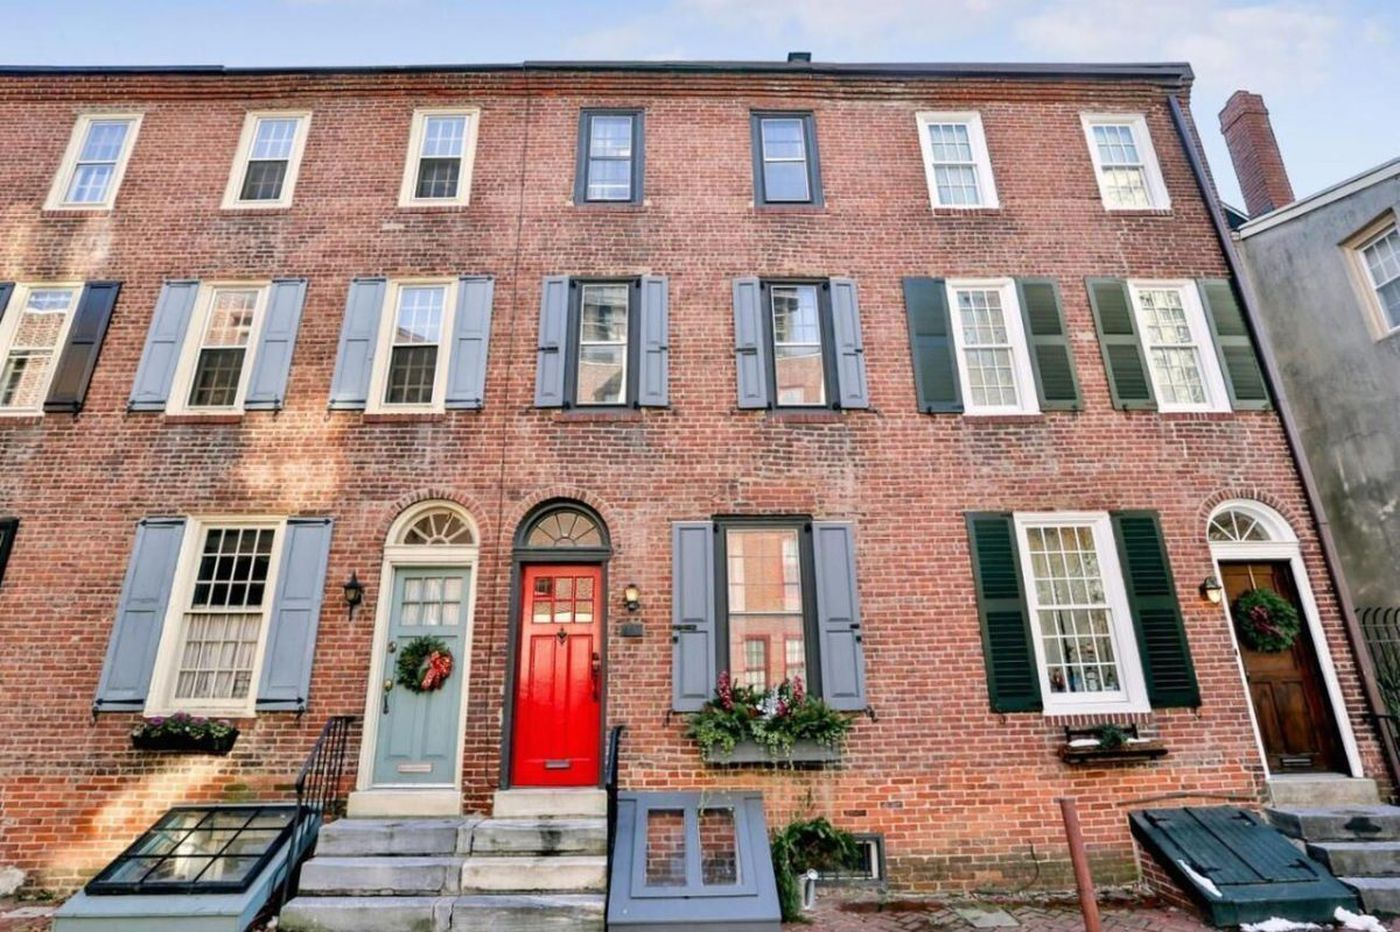 On the market: A Society Hill rowhouse for under $500,000